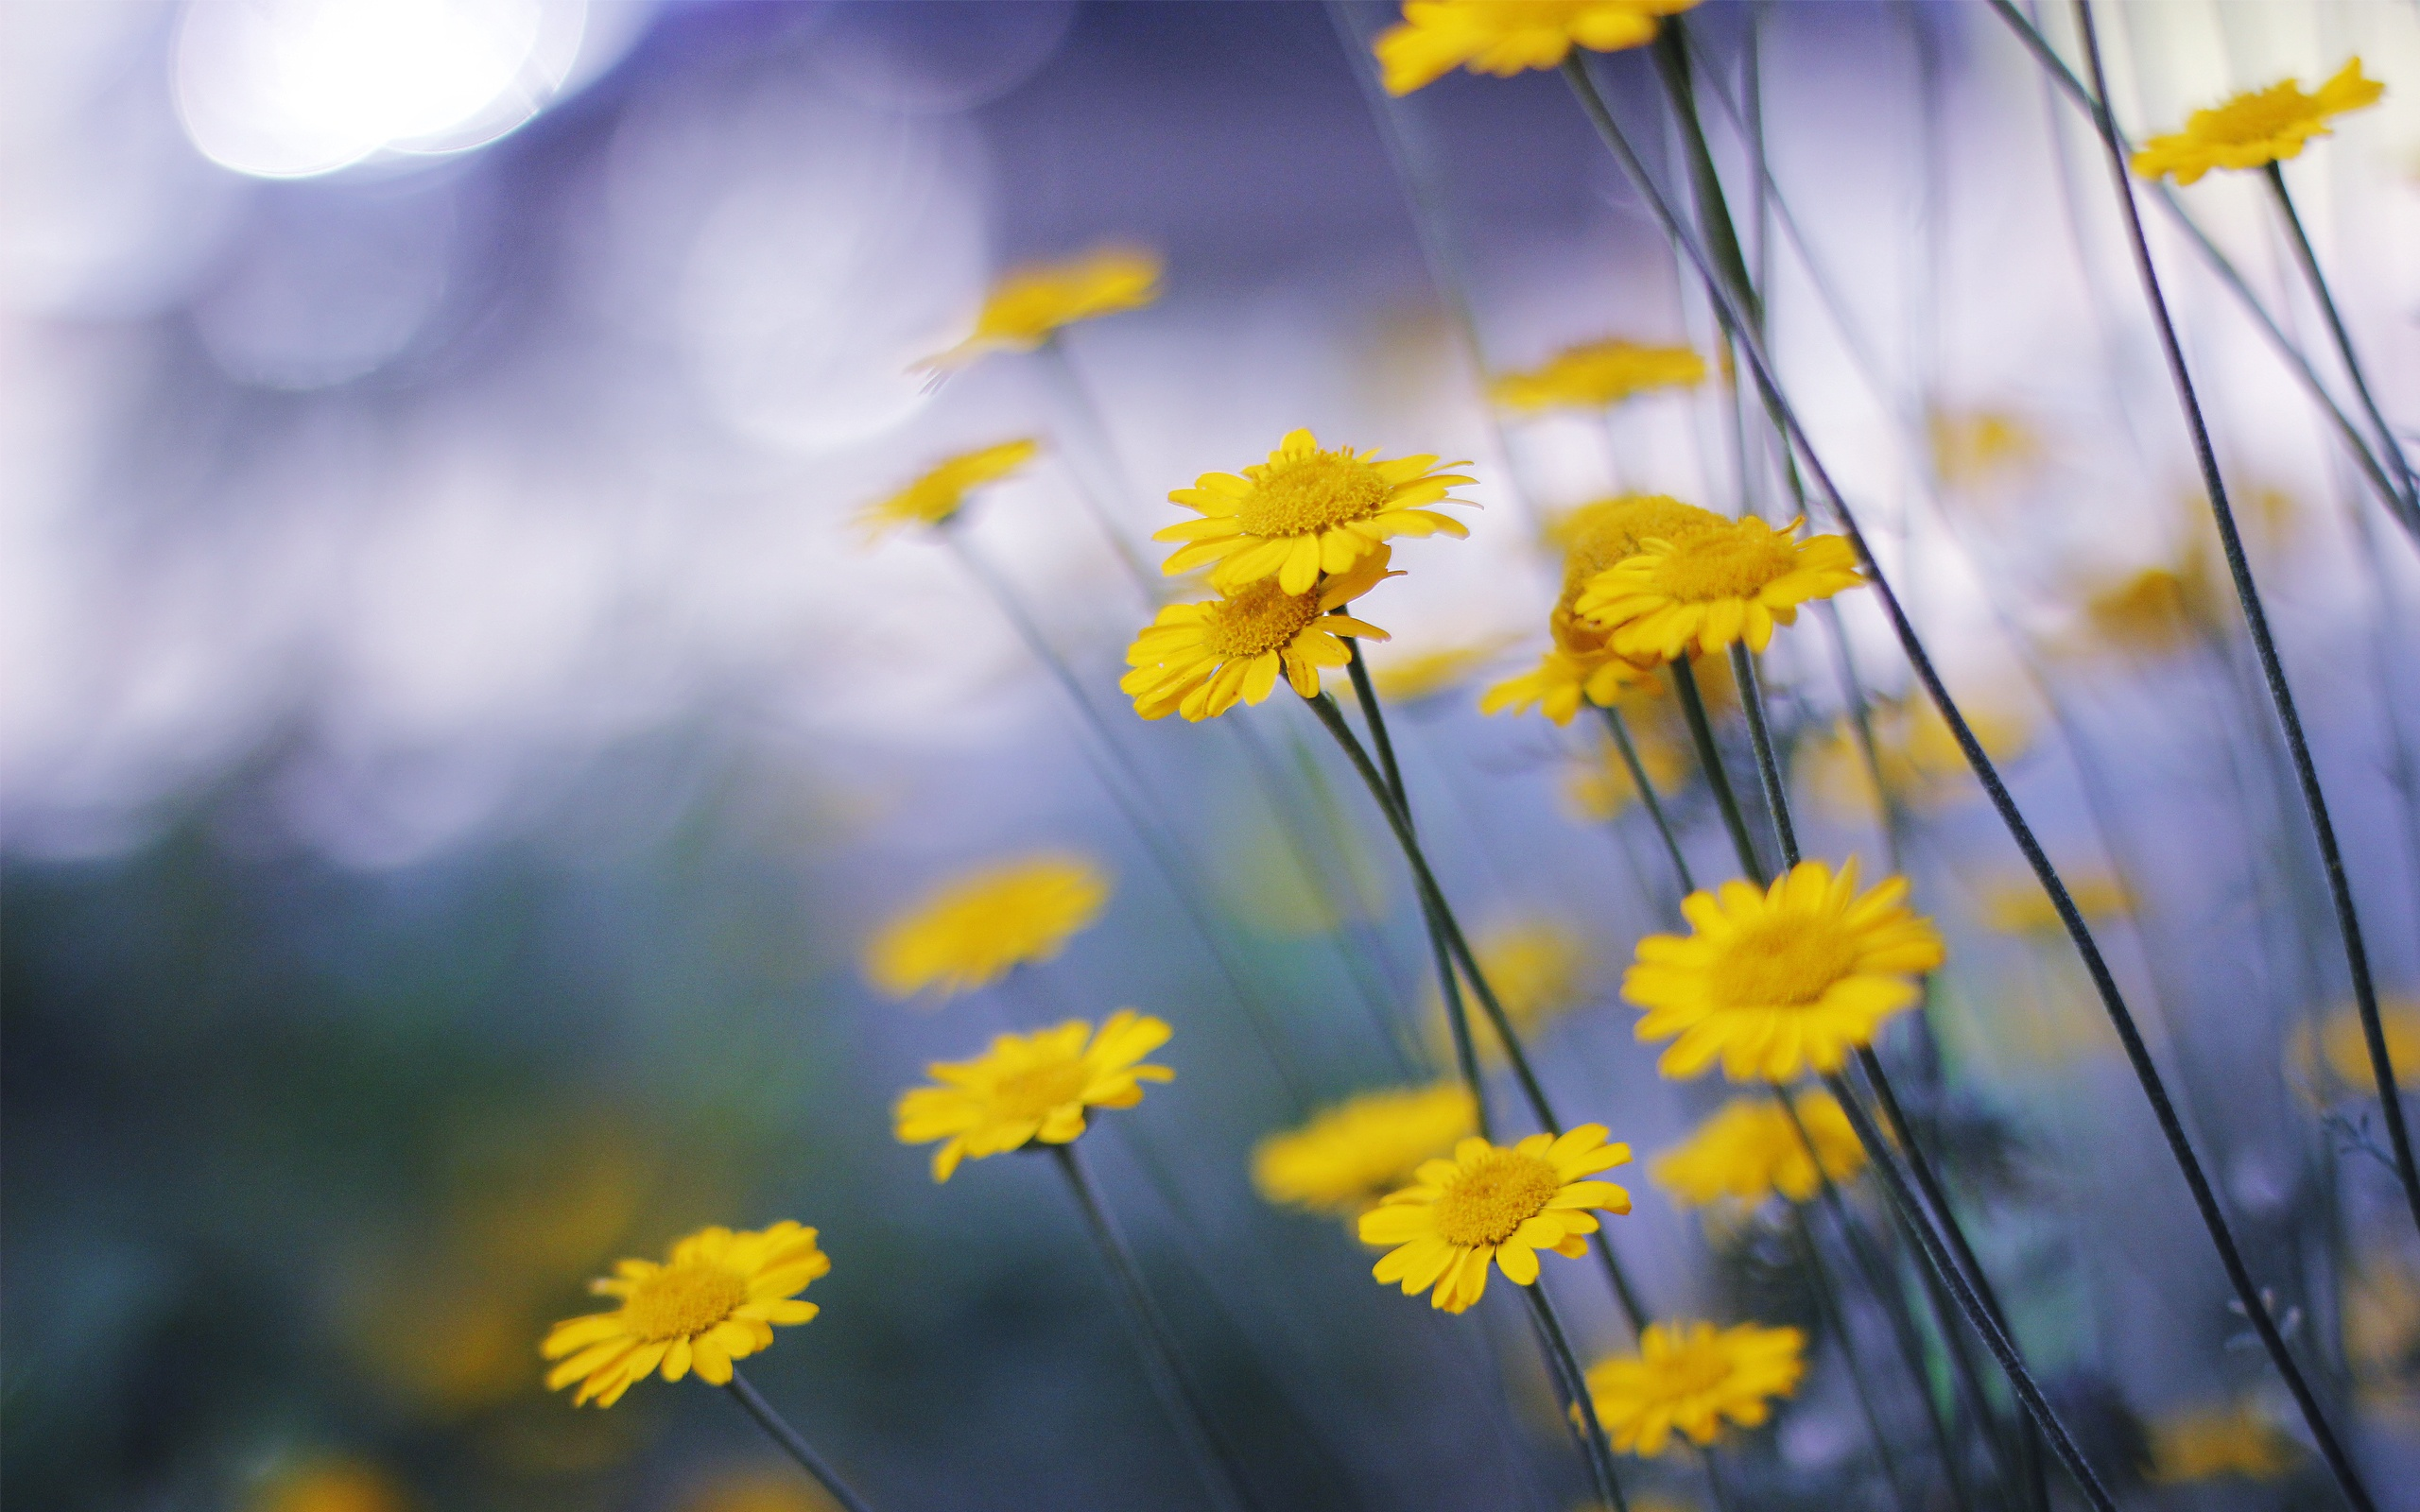 Wallpaper Little Yellow Flowers Macro Photography 2560x1600 Hd Picture Image